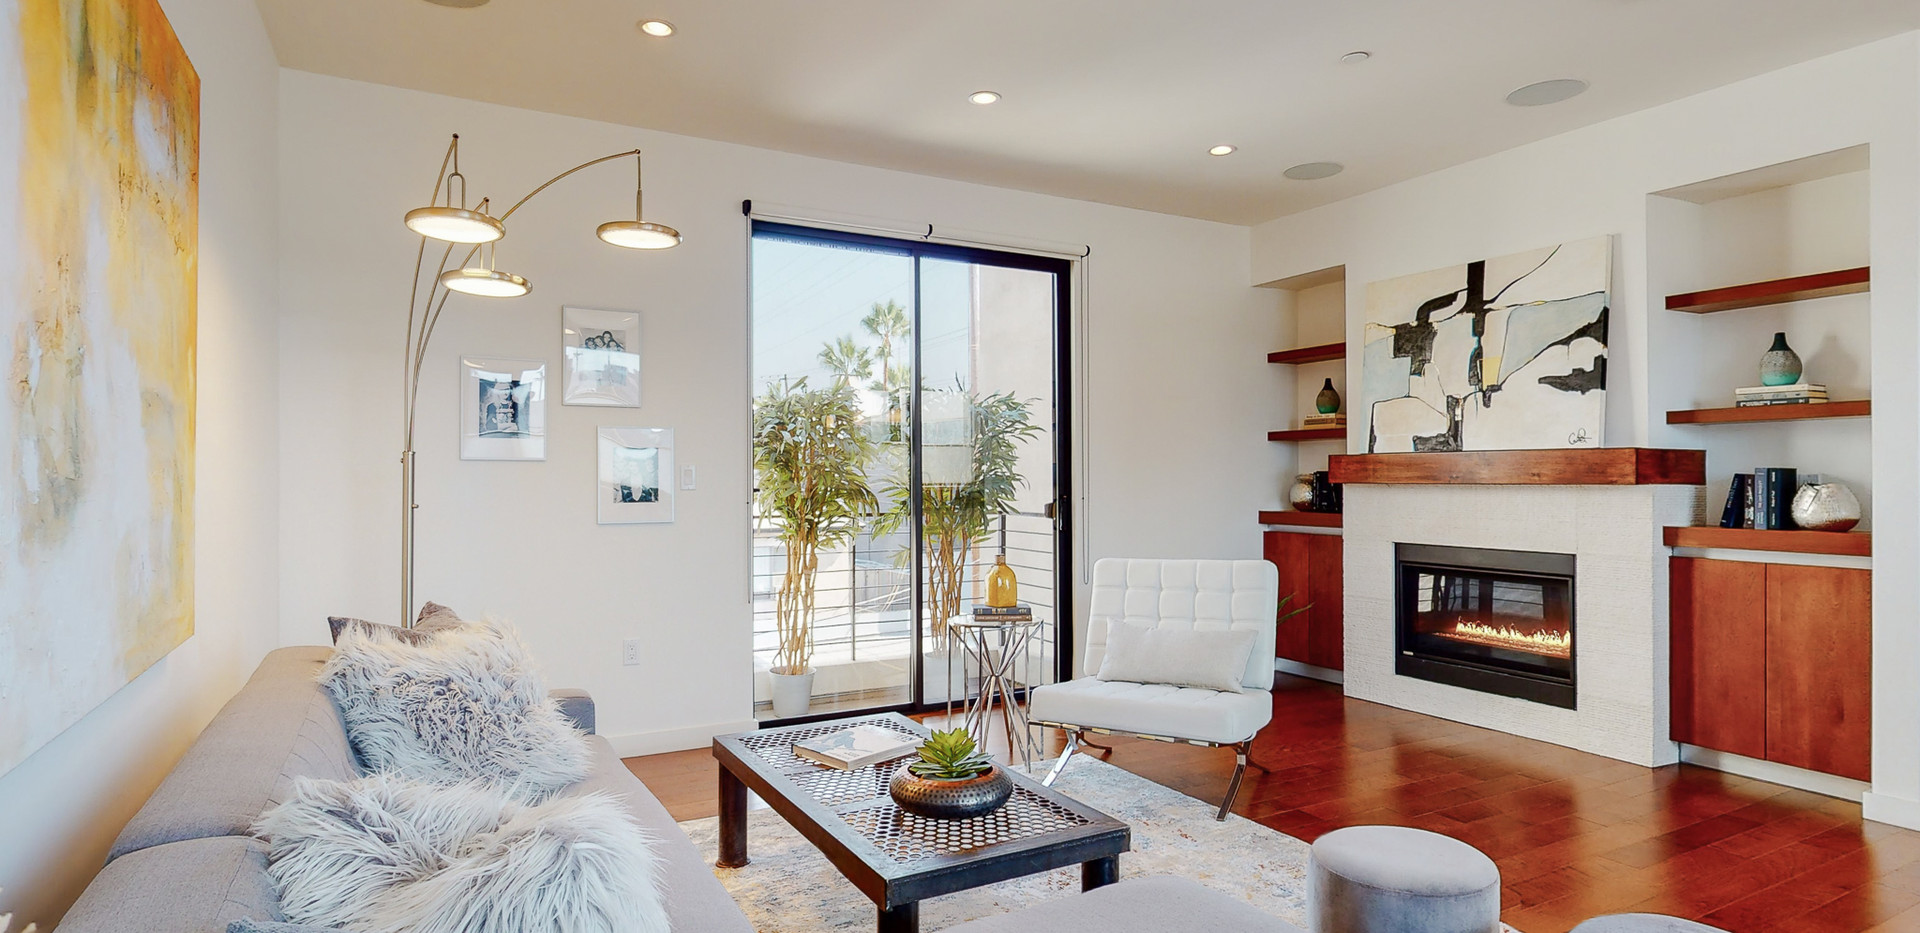 146 S Hayworth Ave-25.JPG